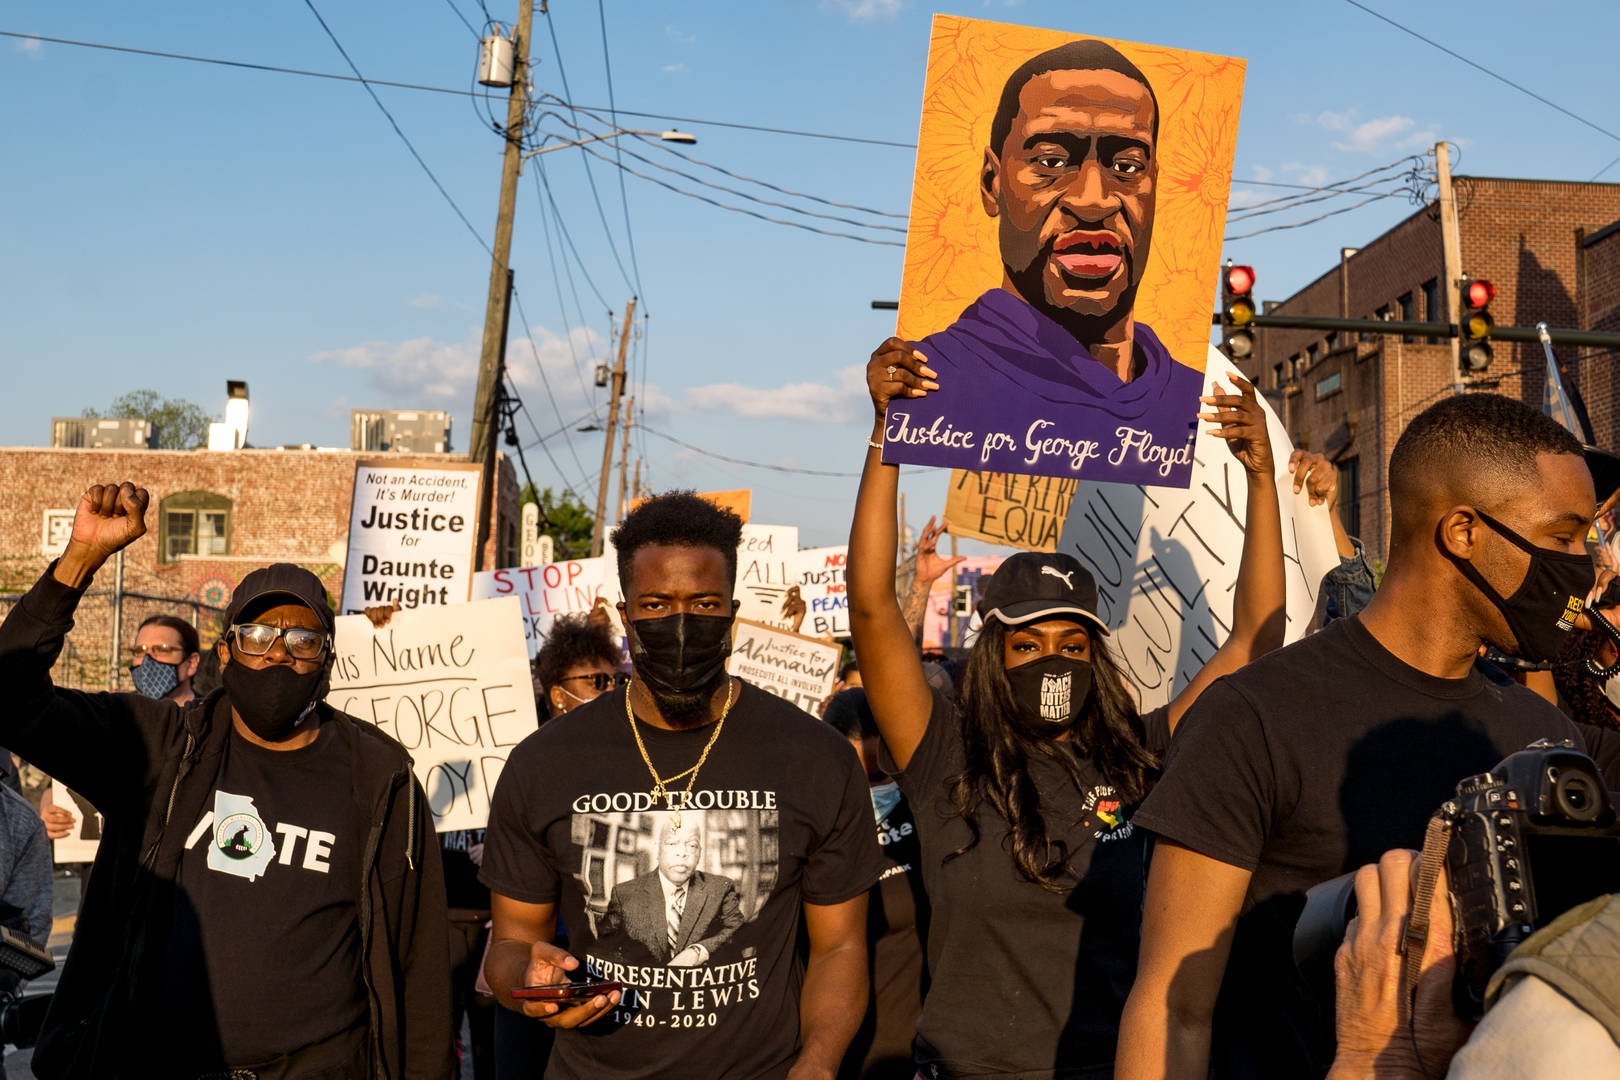 Derek Chauvin, Mark Davis, Raiders, I Can Breathe, I Can't Breathe, George Floyd, Eric Garner